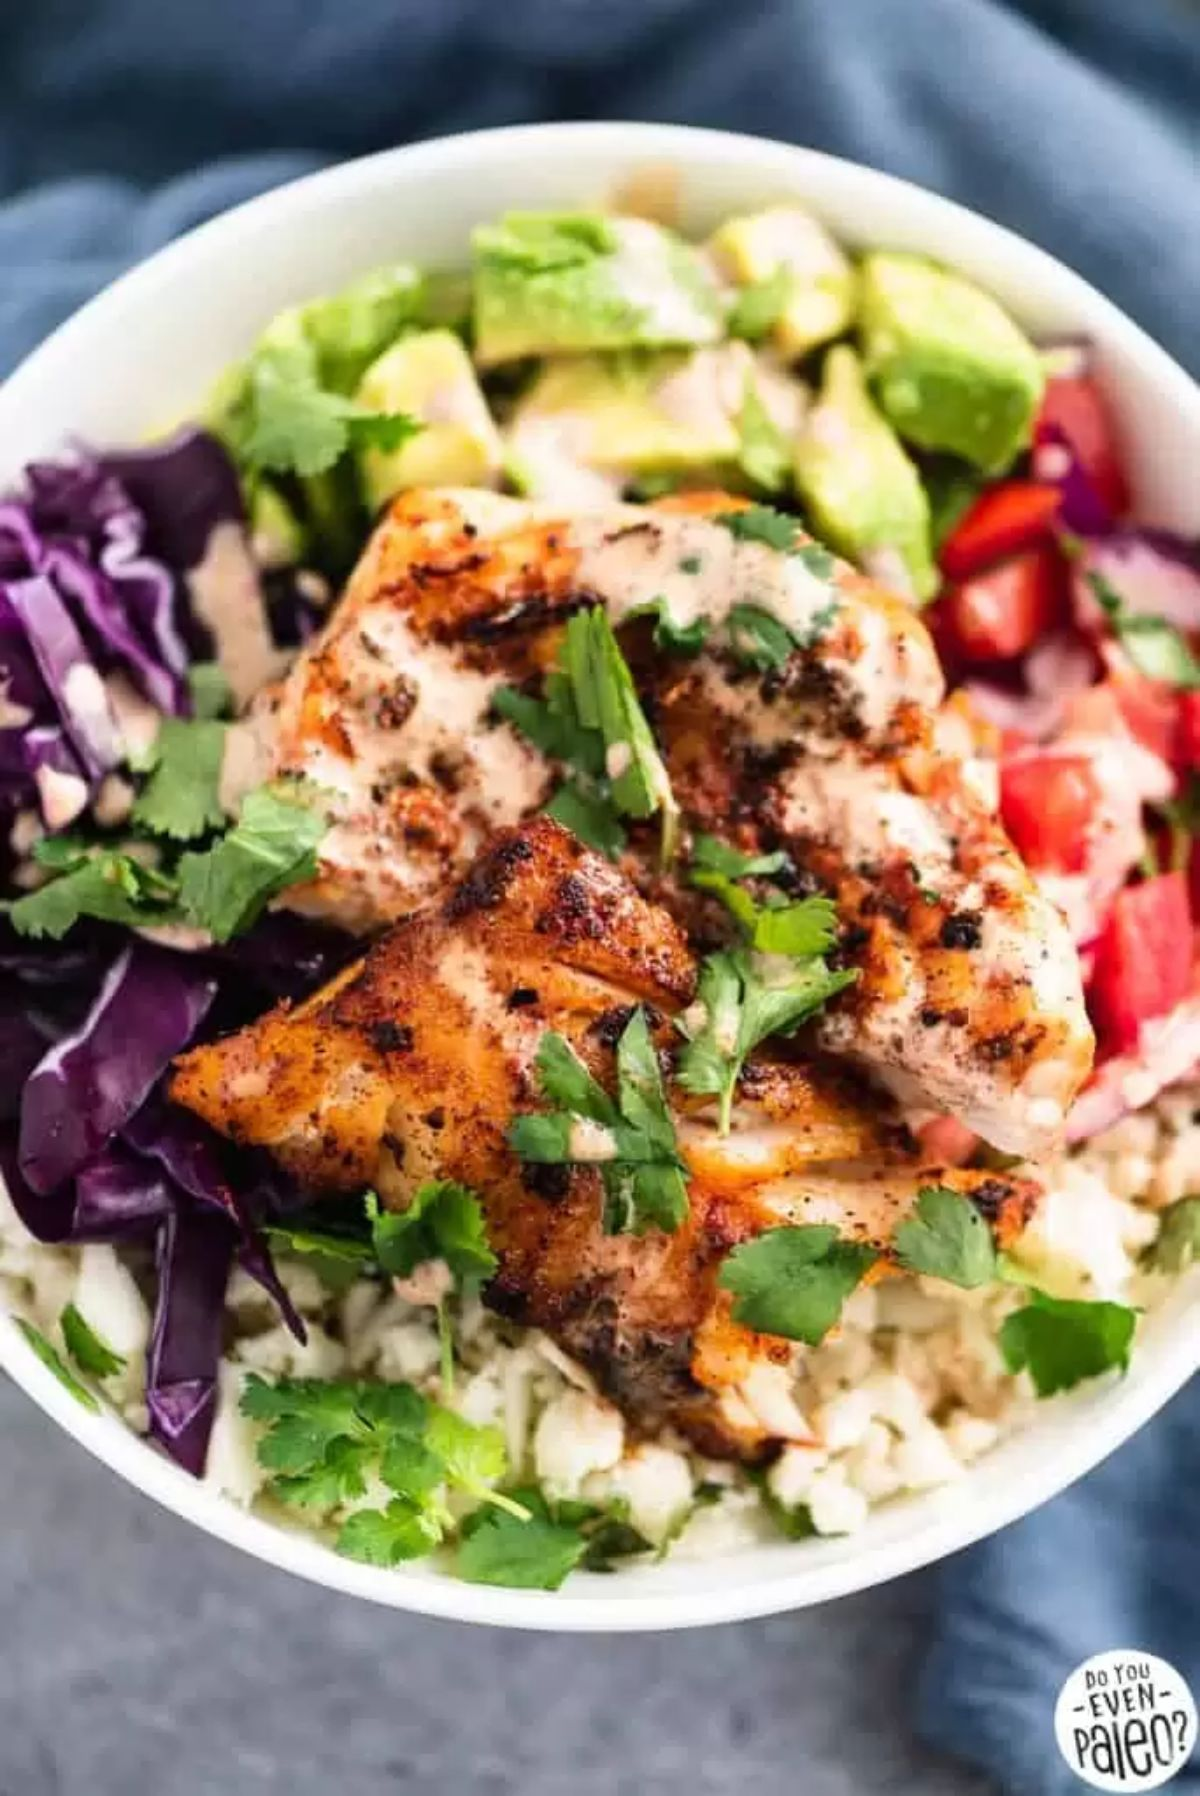 a bowl of fish, red cabbage, avocade, tomatoes and fish fillet, topped with chopped herbs